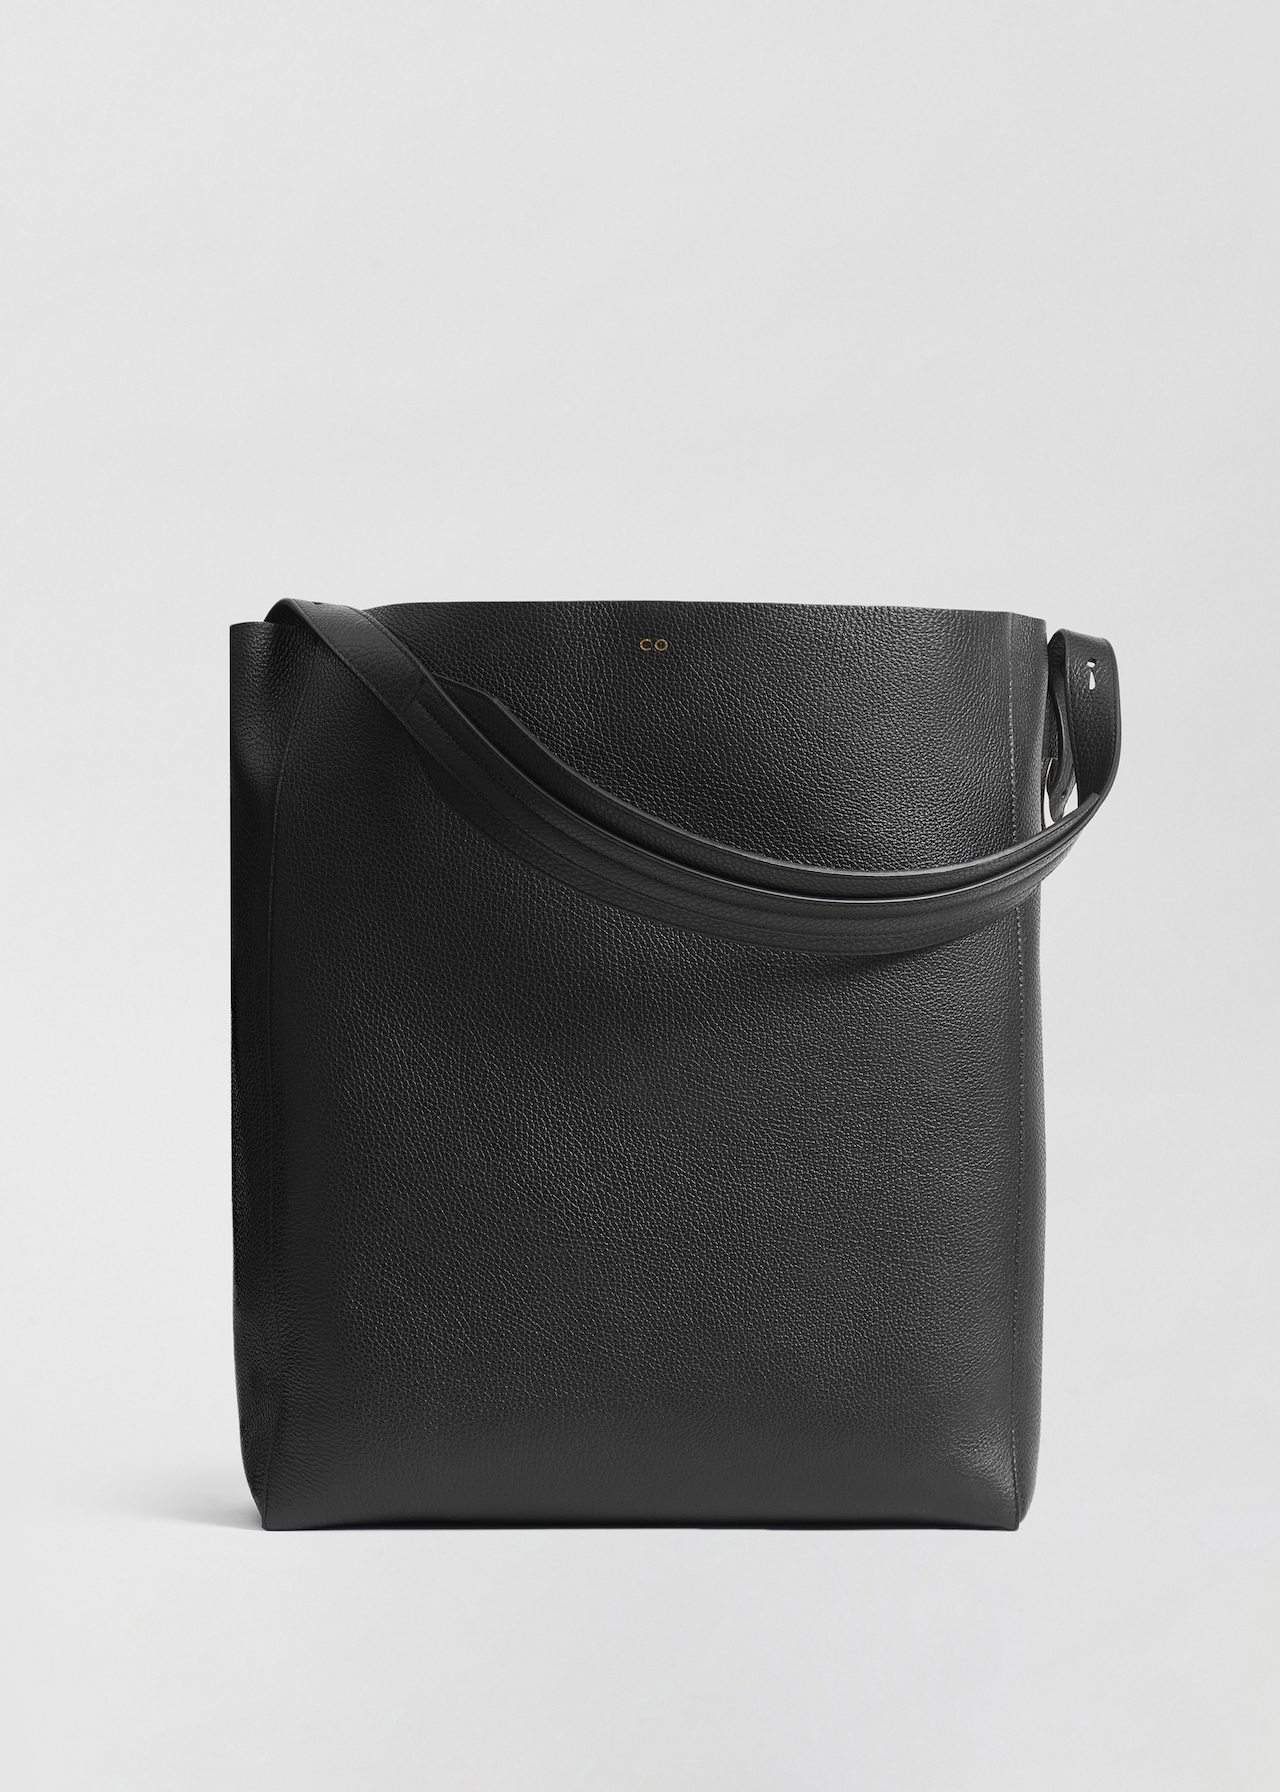 Classic Tote in Pebbled Leather - Olive in Black by Co Collections